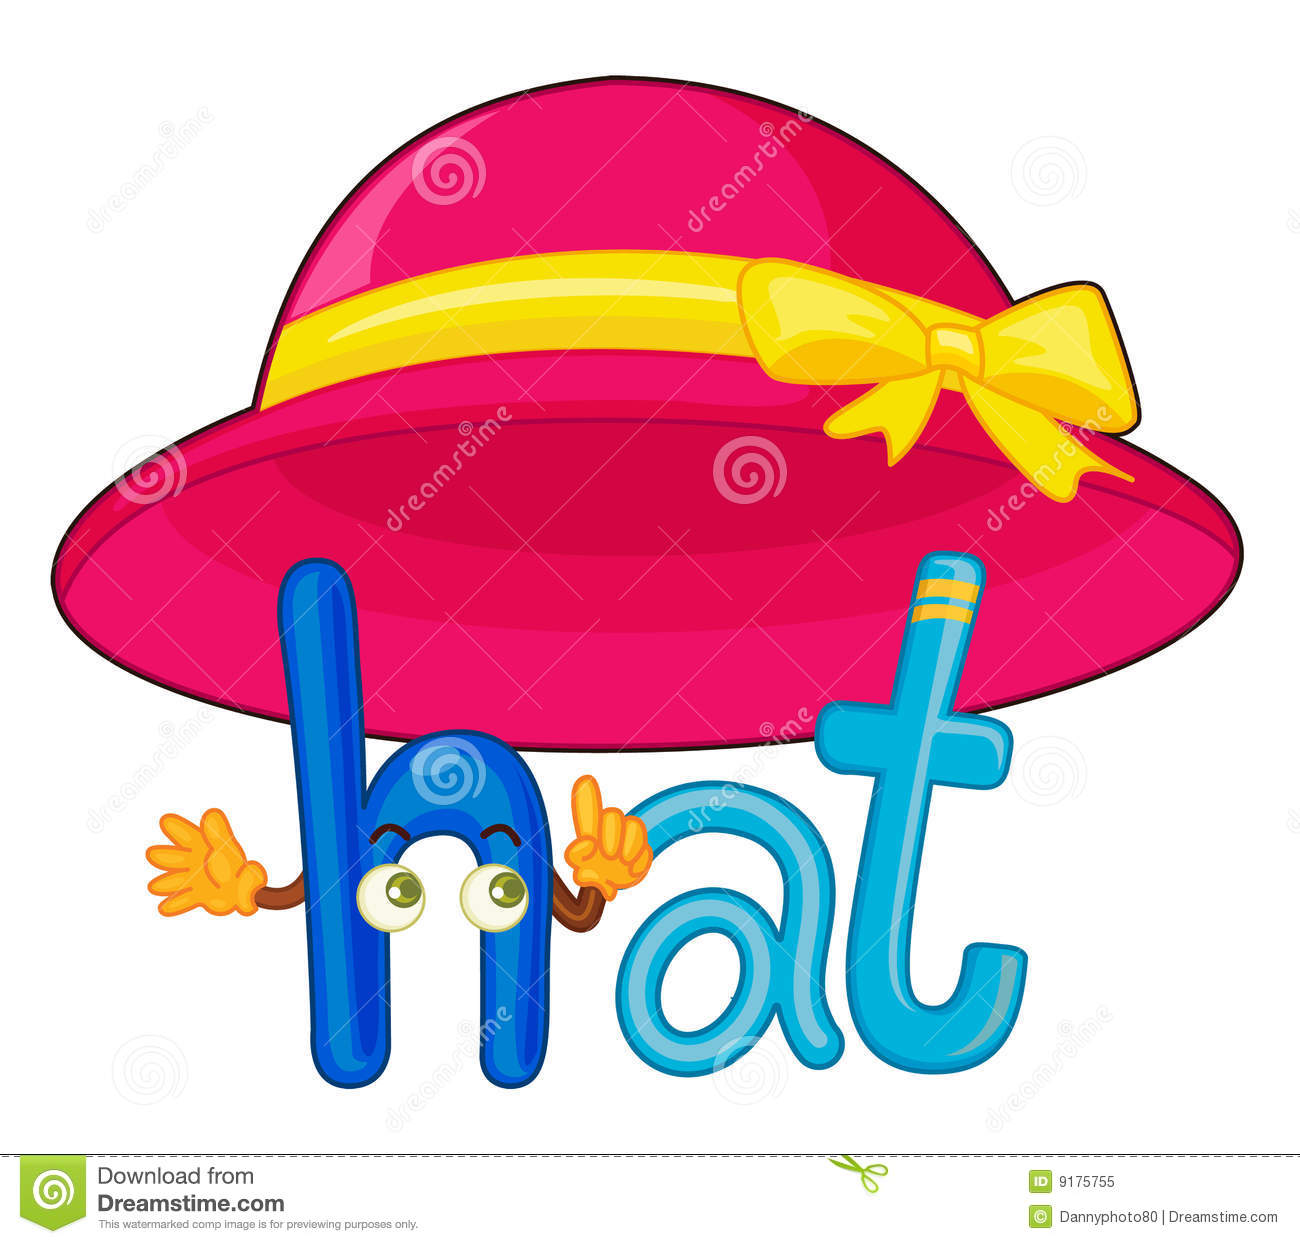 h for hat